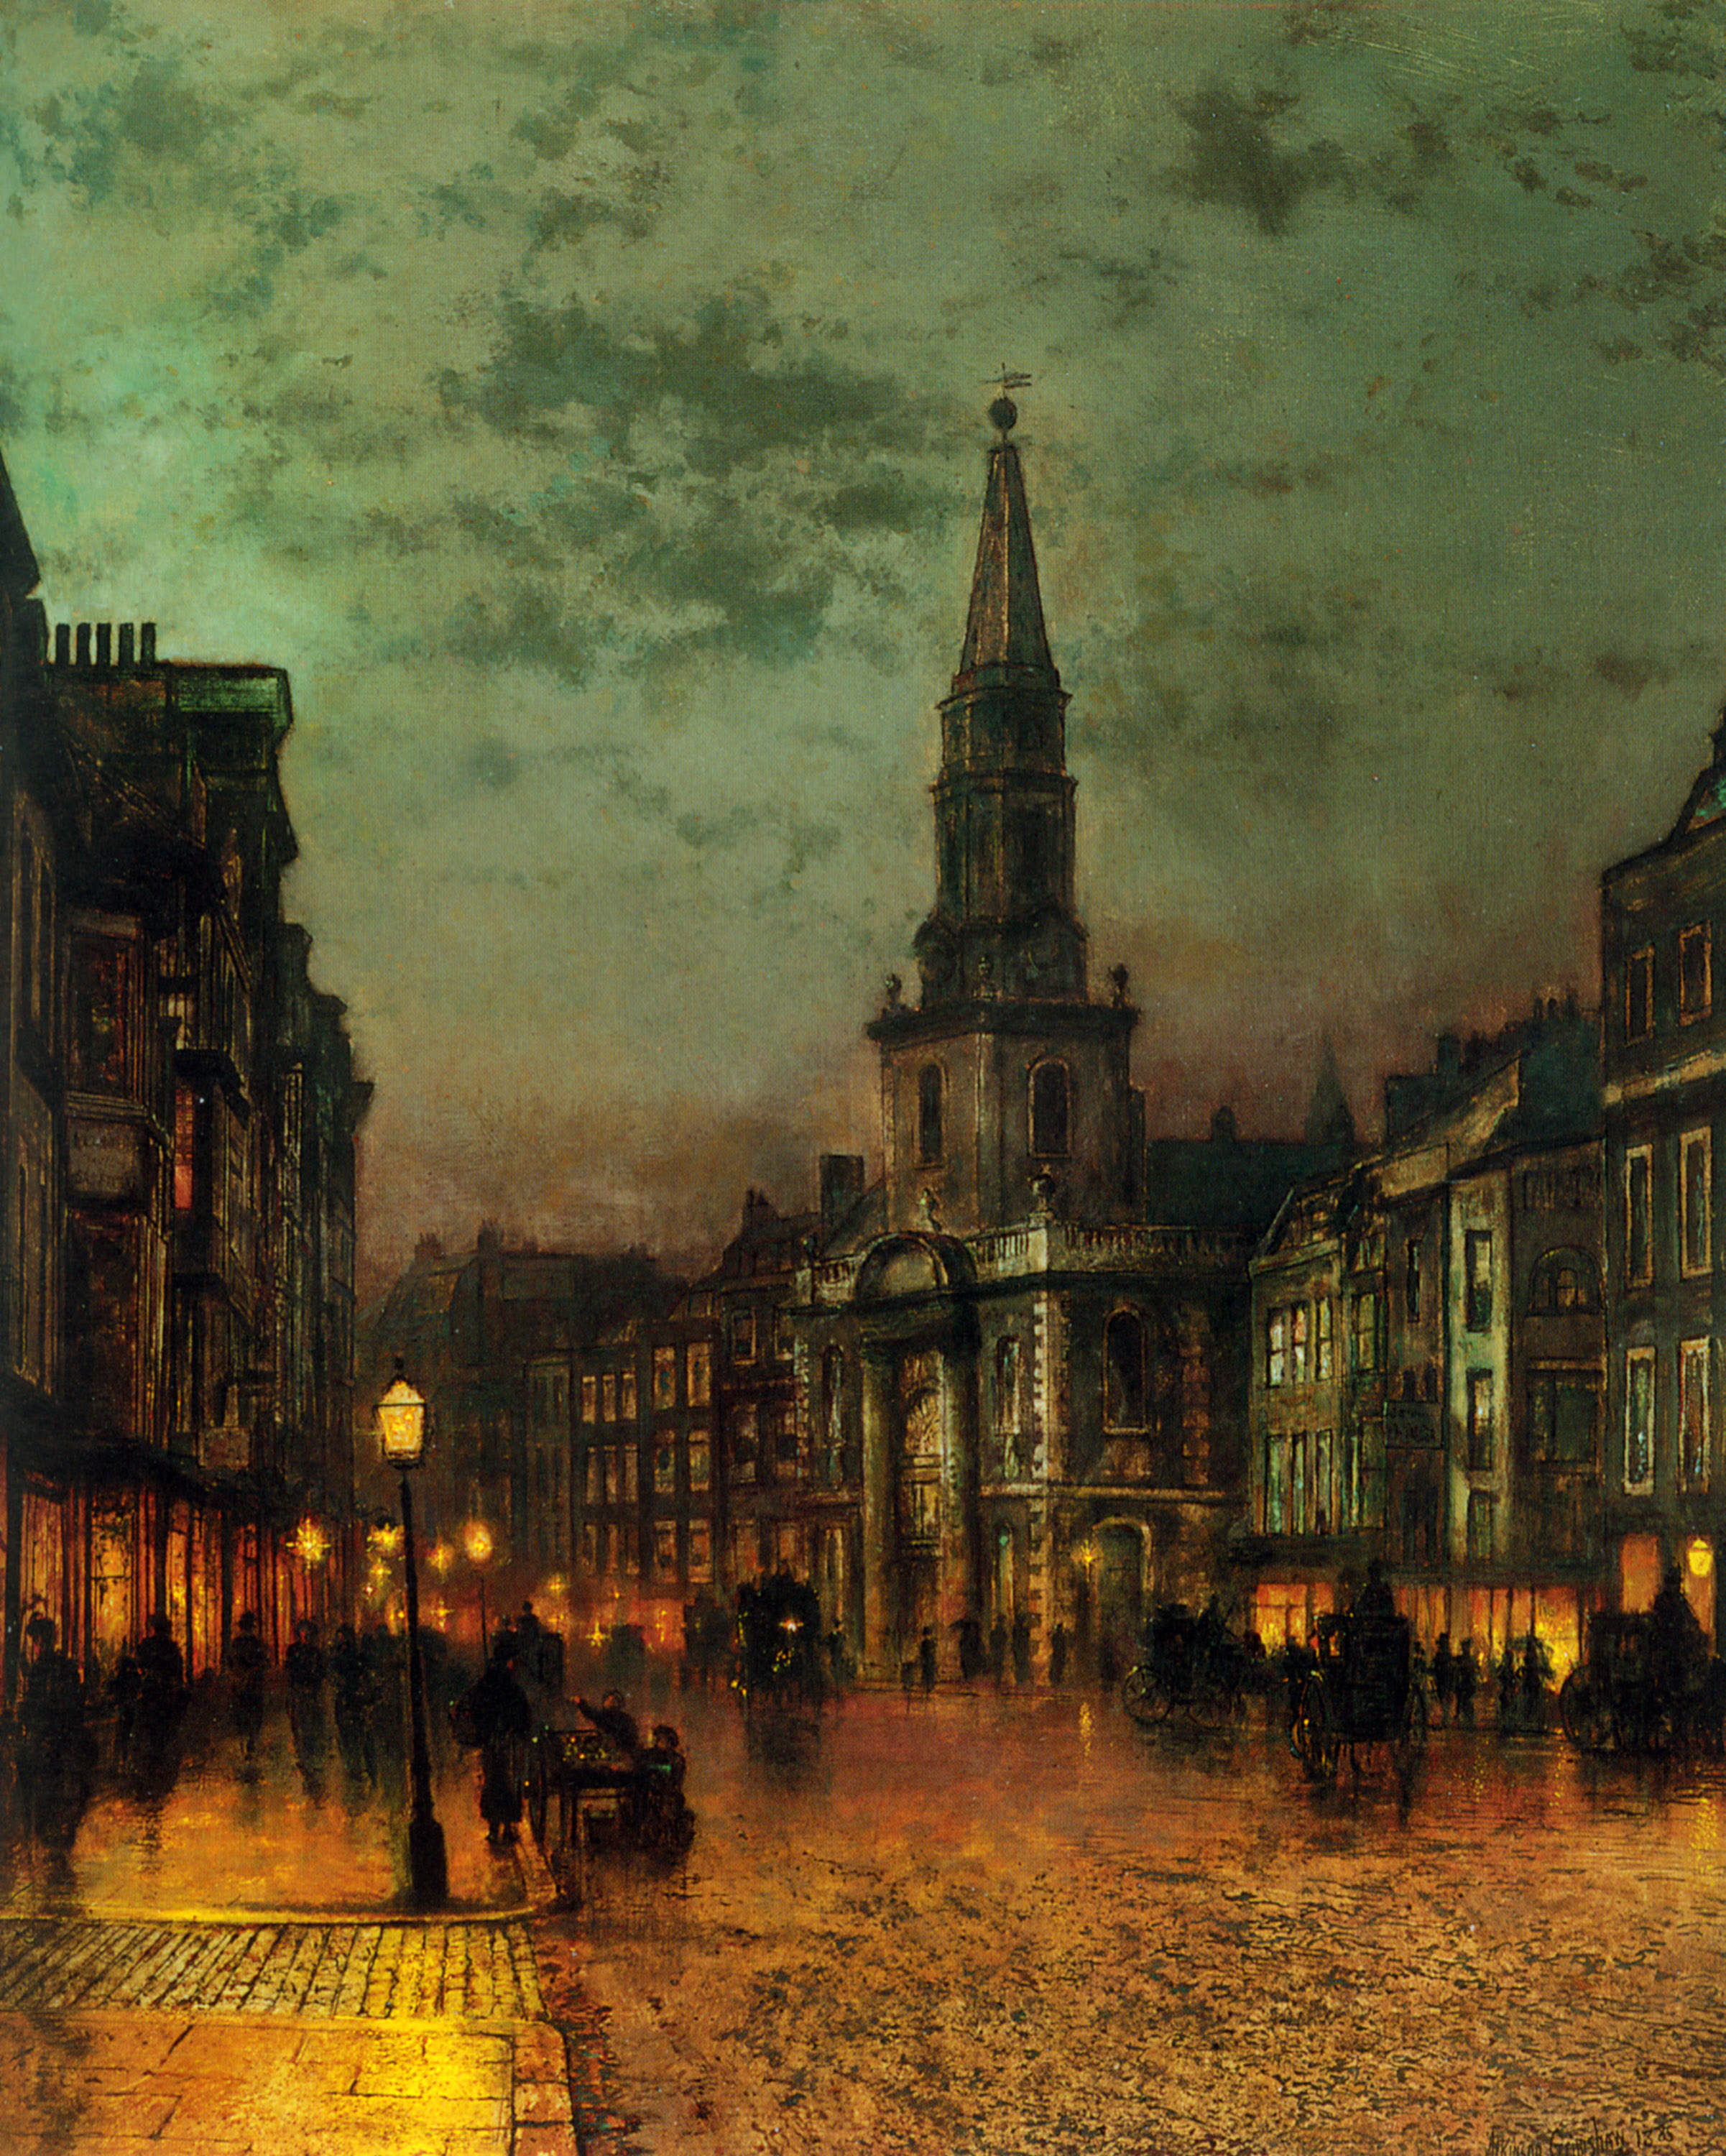 Blackman Street, London, by John Atkinson Grimshaw, 1885